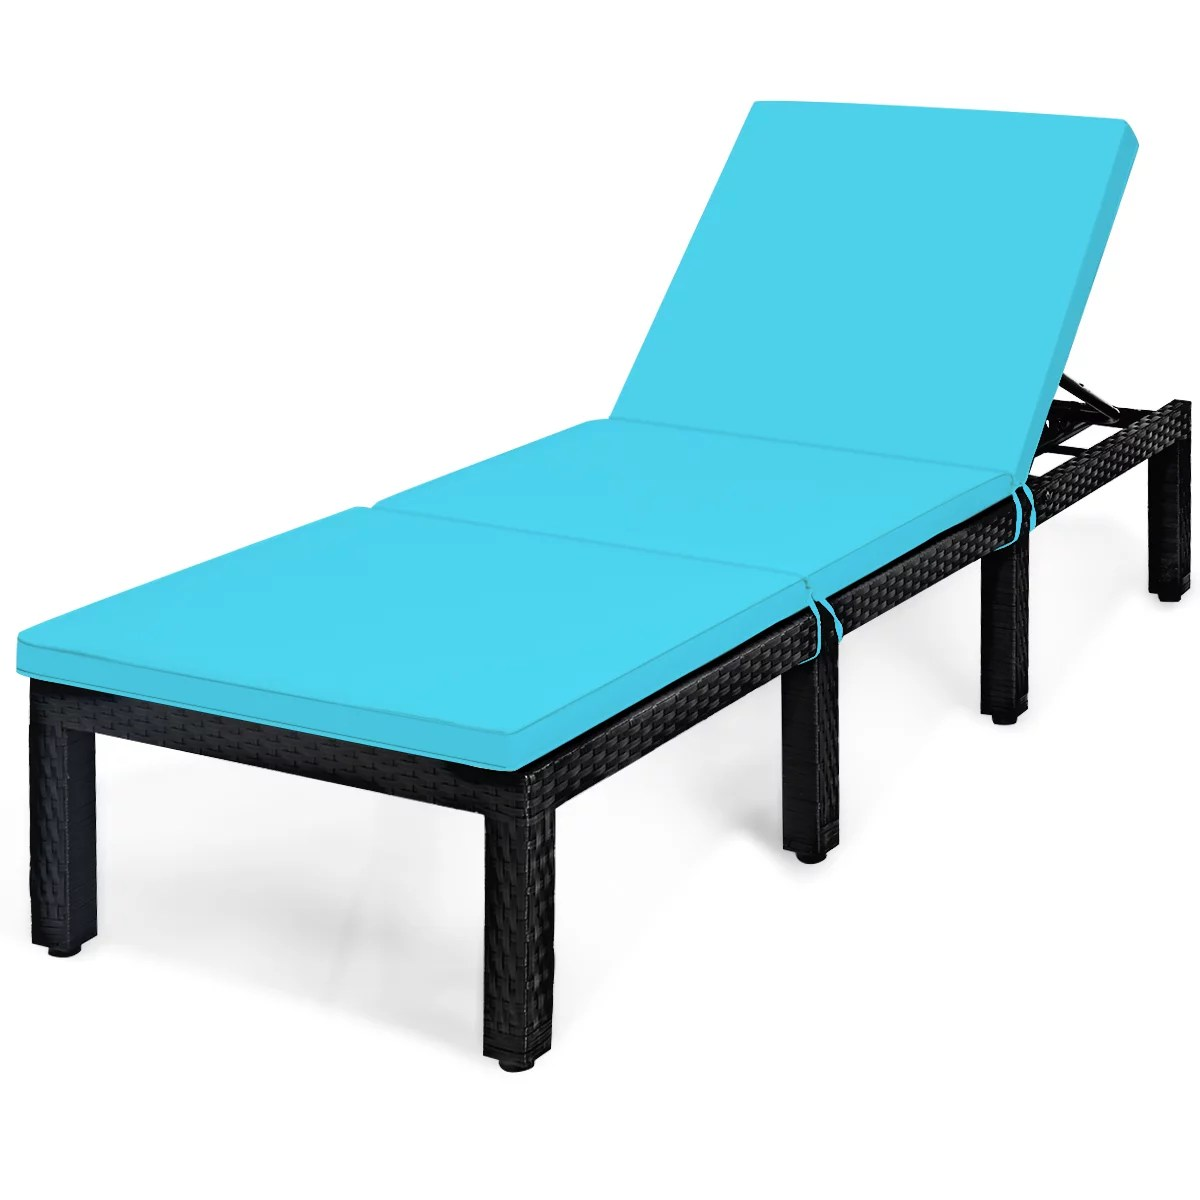 topbuy adjustable outdoor patio rattan lounge chair chaise couch with cushions